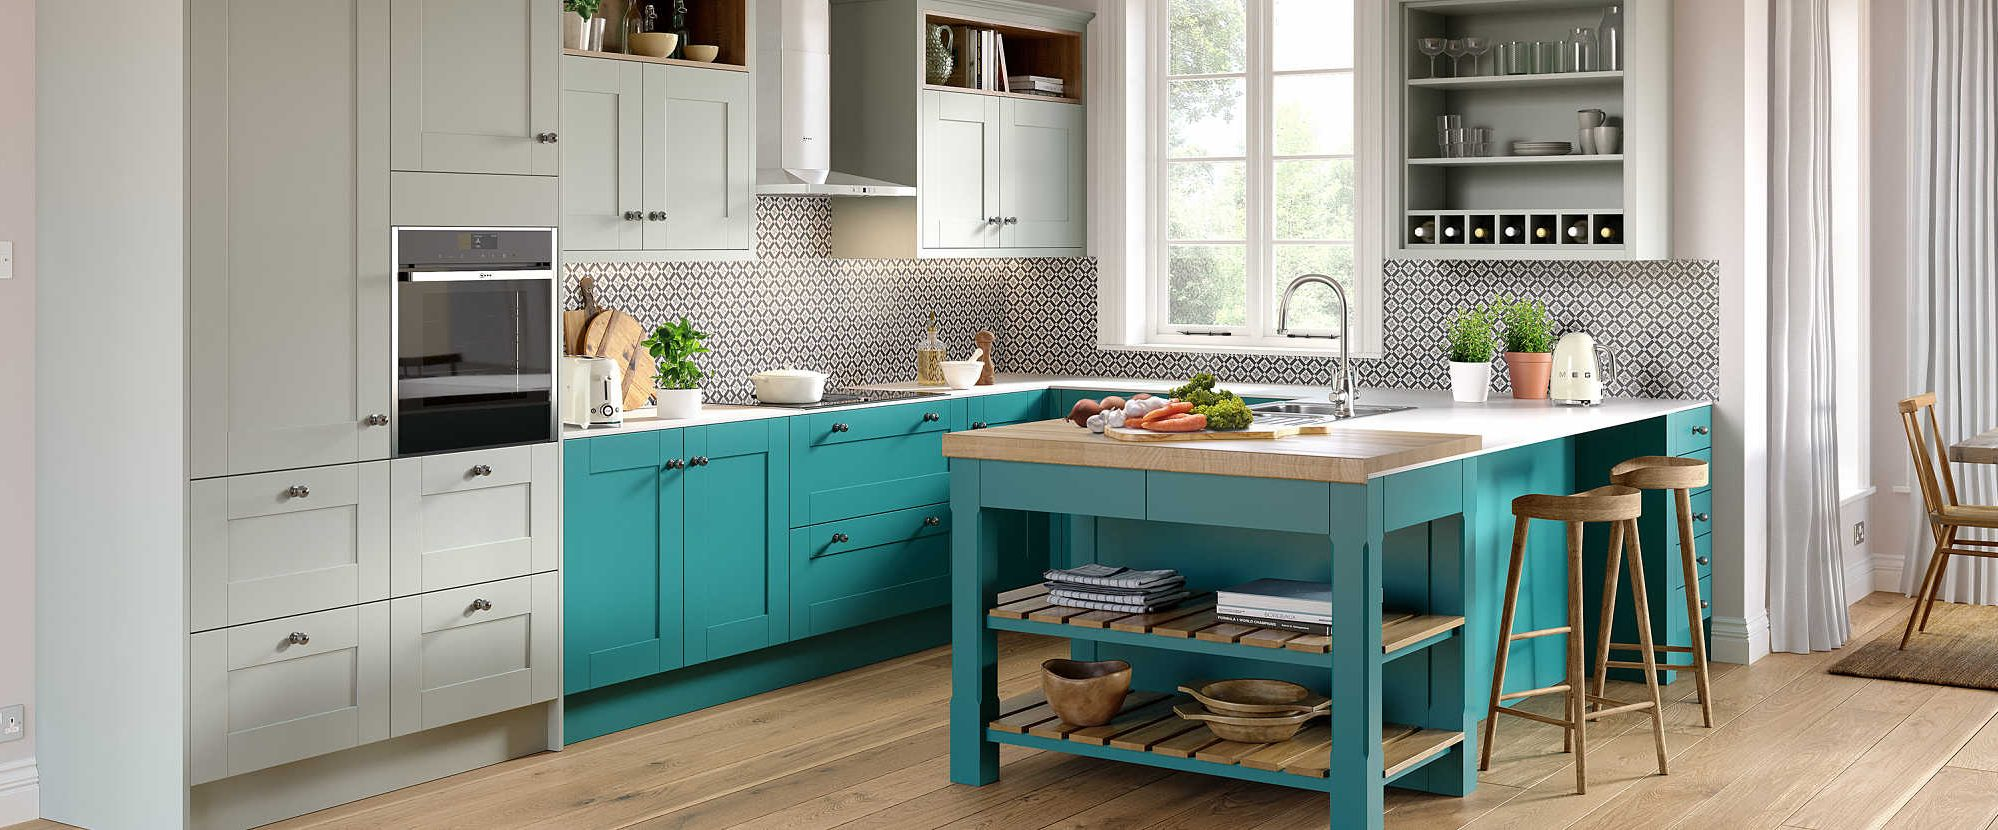 New Sheraton Blue & Pink Kitchen 2019 range - Nouveau in Turquoise and blue